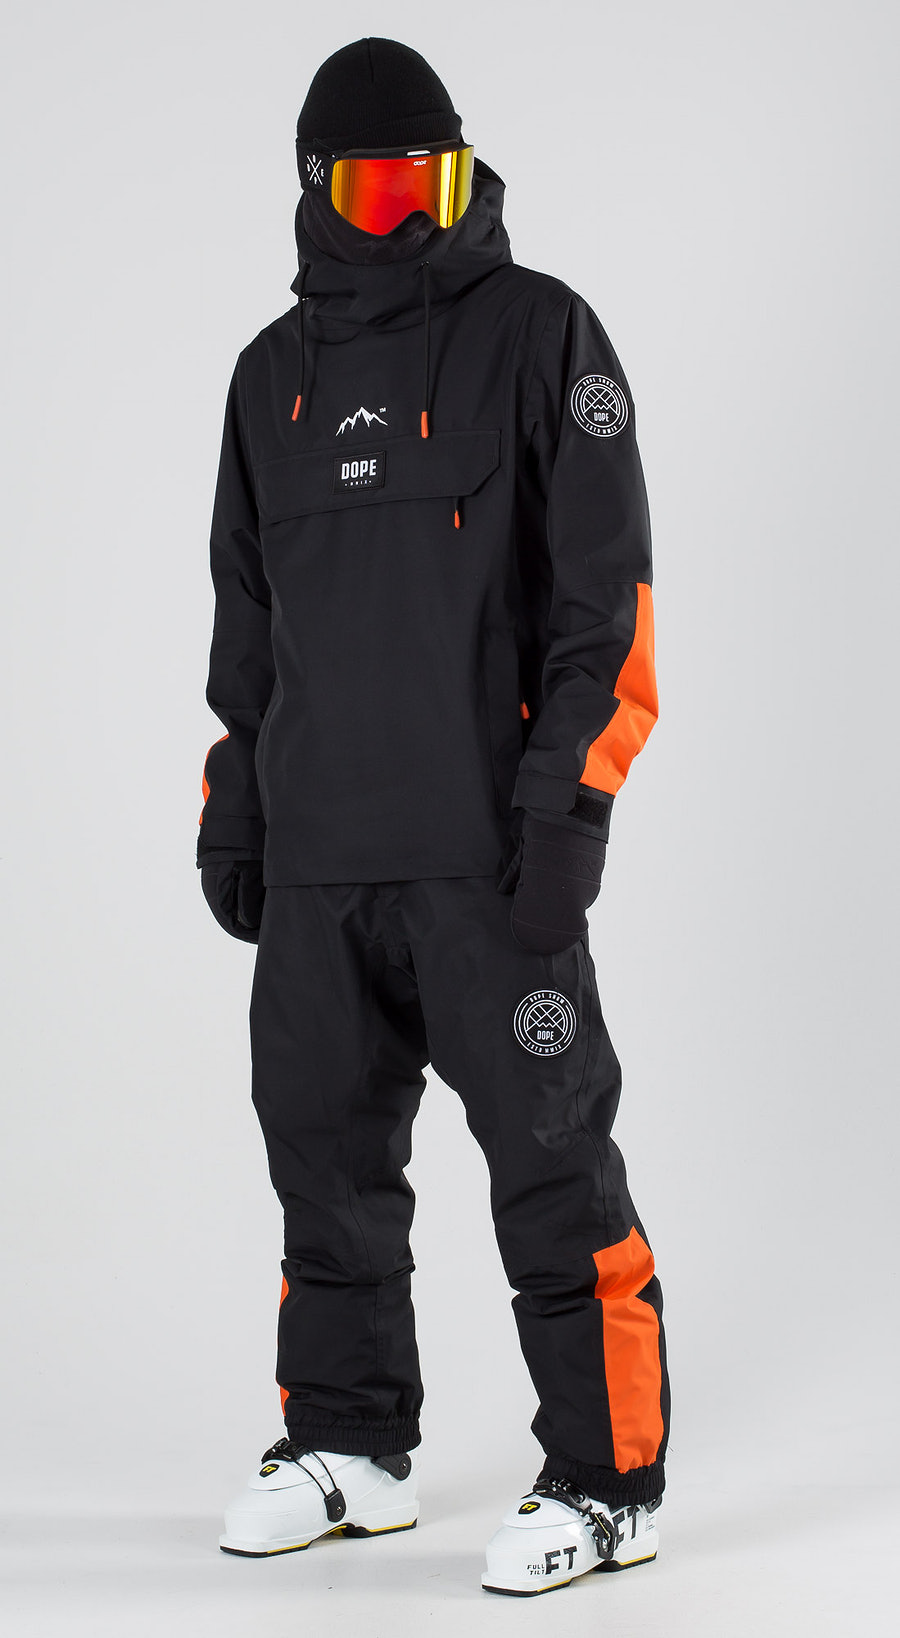 Dope Blizzard LE Black Orange Skidkläder Multi